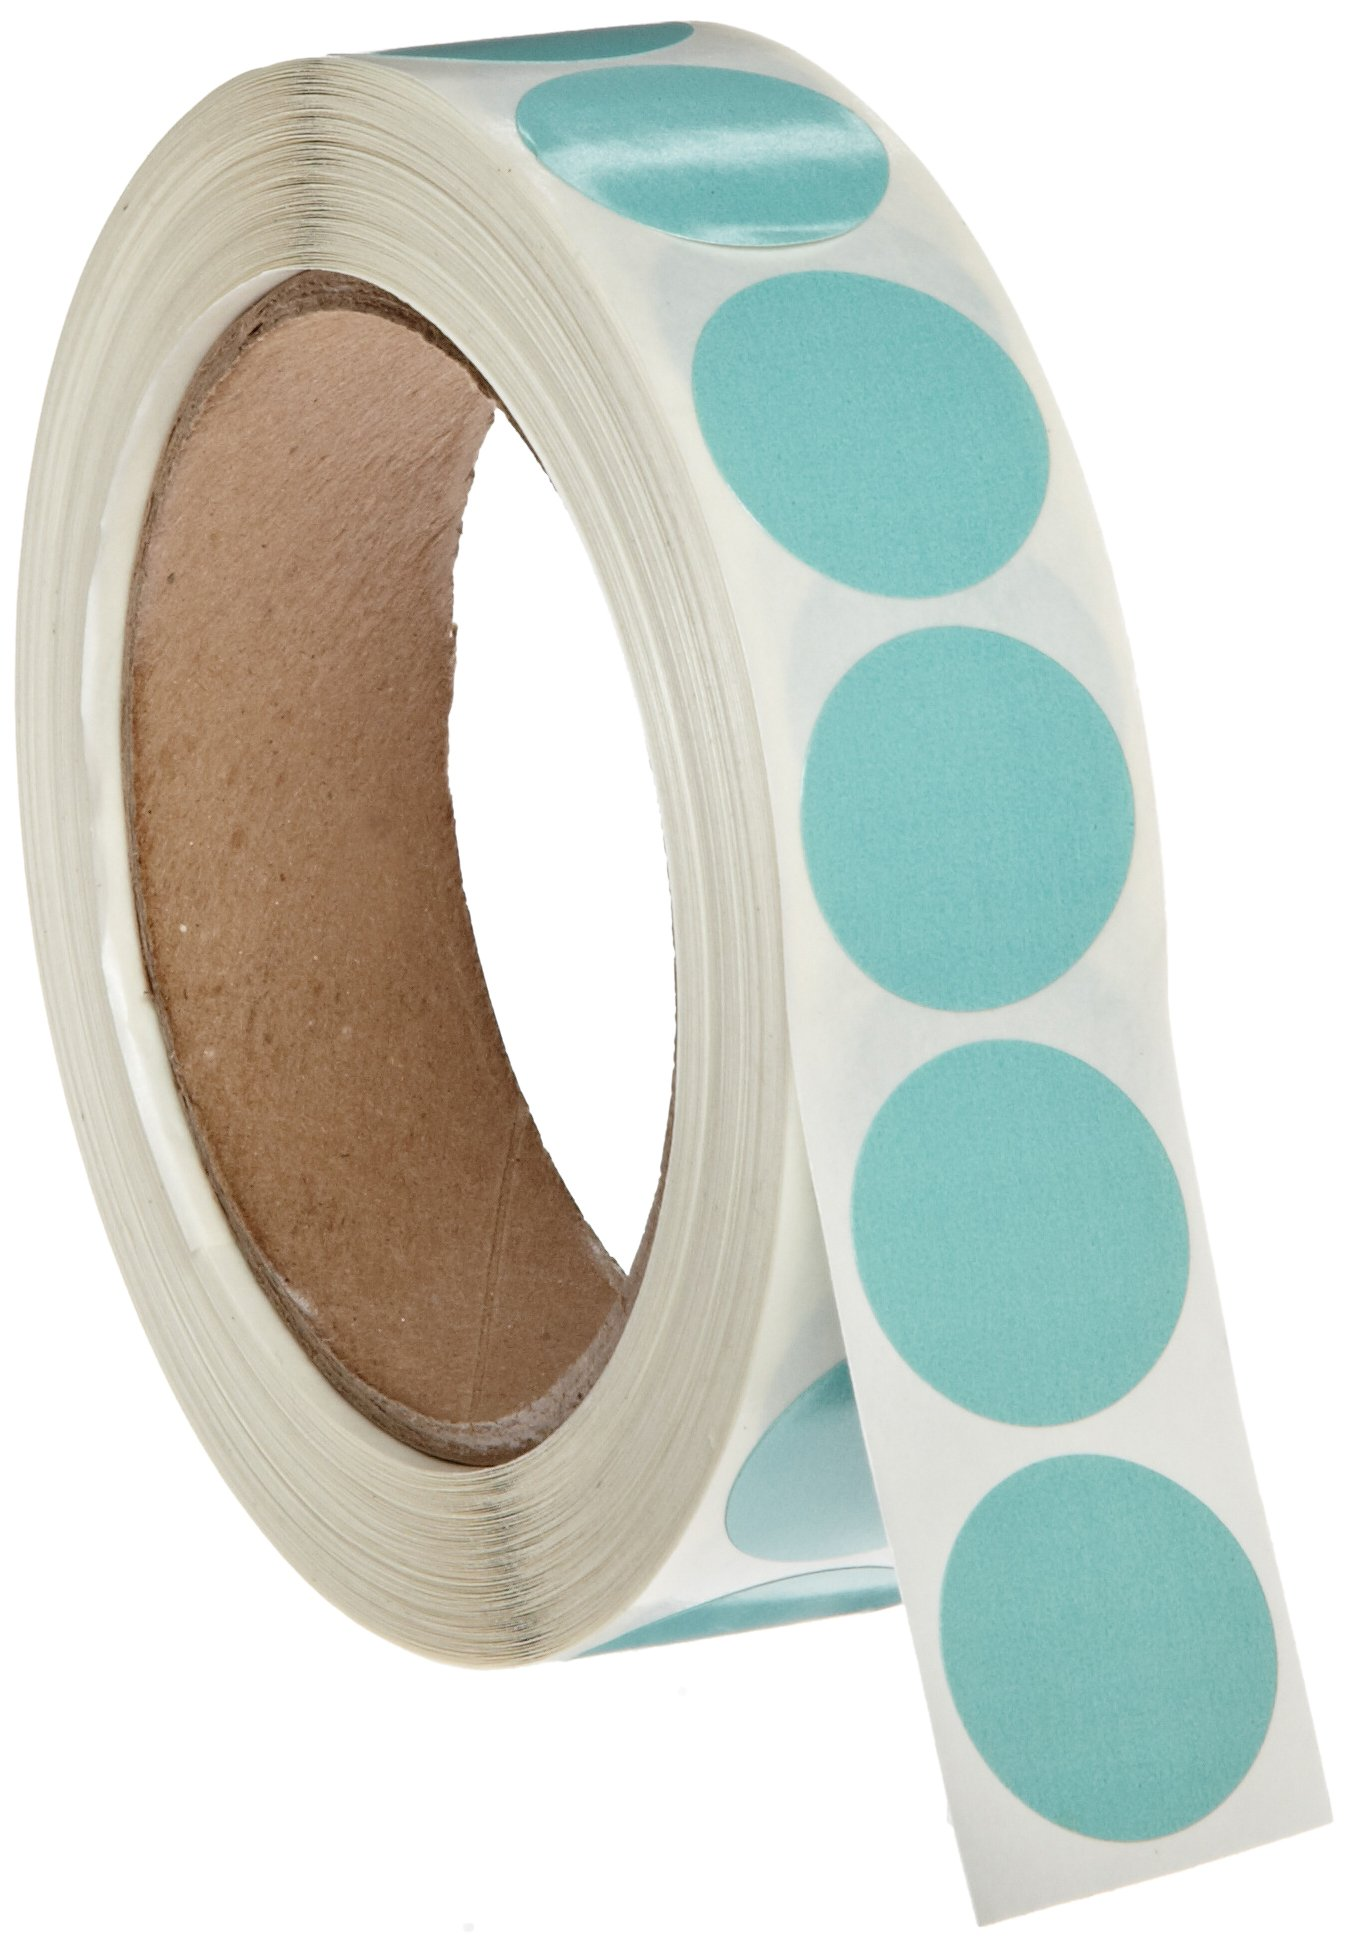 Roll Products 119-0004 Adhesive Dot Label, 1'' Diameter, For Inventory and Marking, Blue (Roll of 1000)